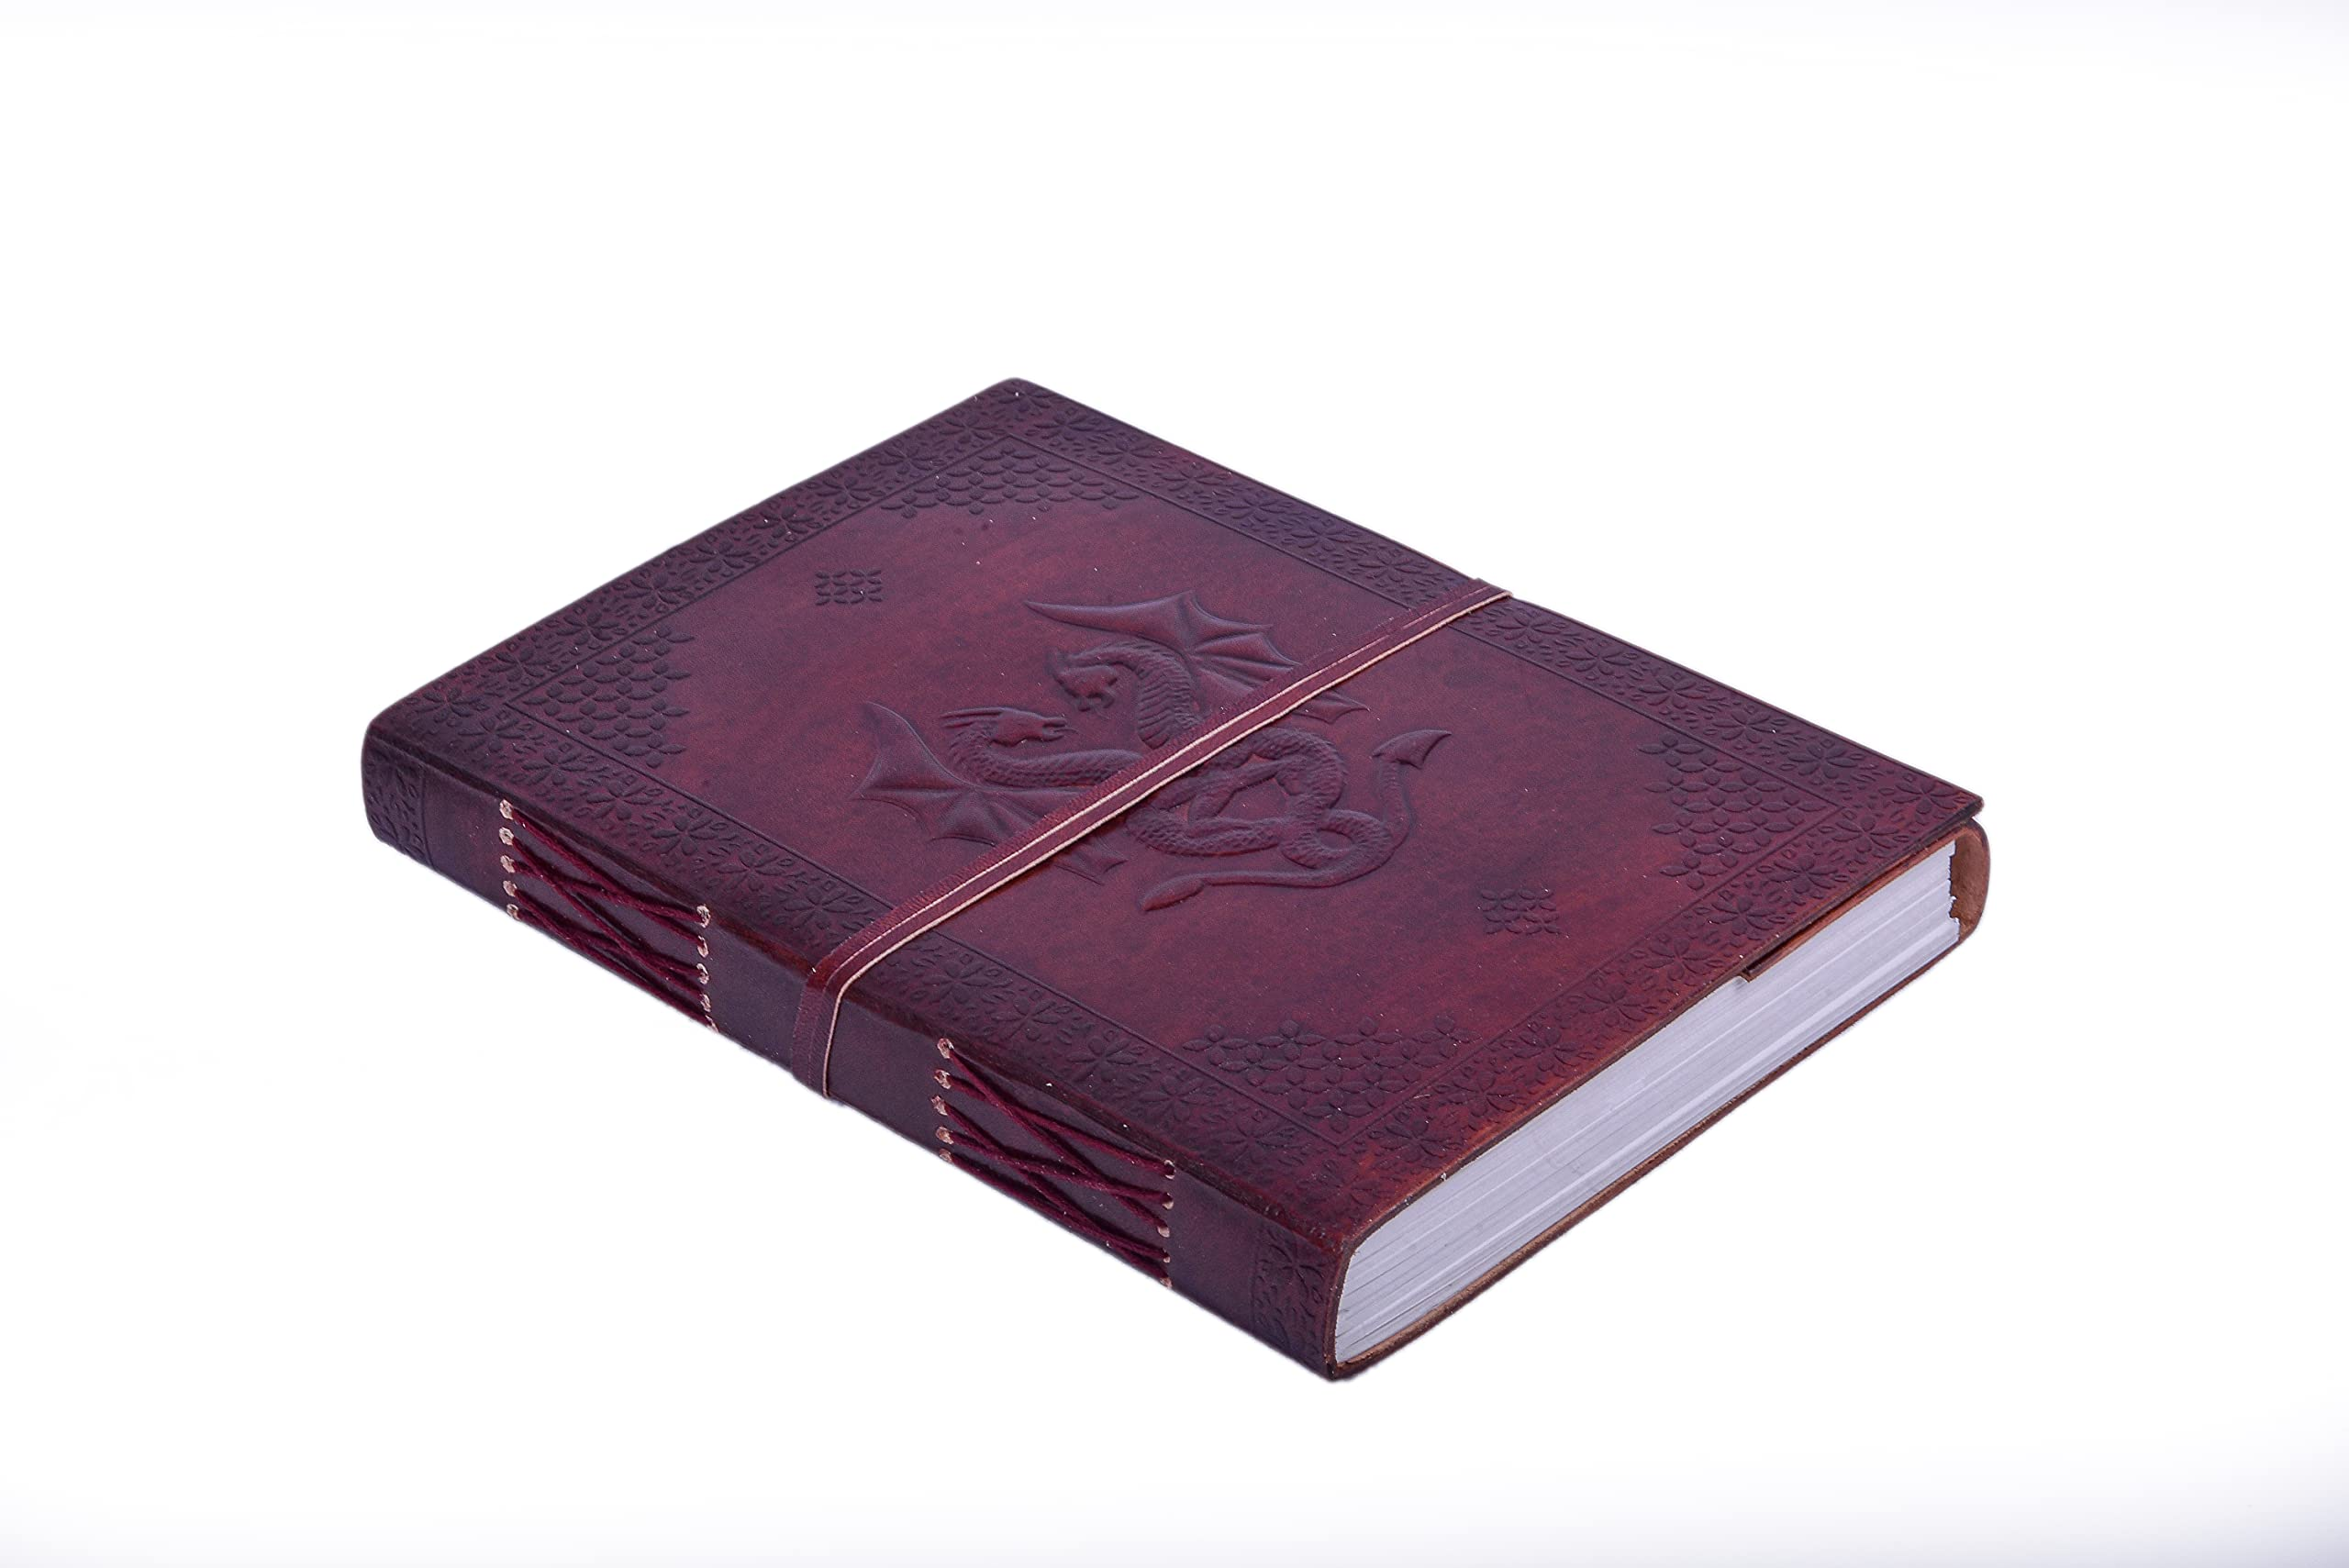 Antique Leather Journal, Leather Bound Writing pad, Dragon Embossed Blank Unlined Paper Notebook for Travel, Office, Thoughts, Sketching with Wraparound Tie, Gift for Men and Women, Brown 10X7 Inches